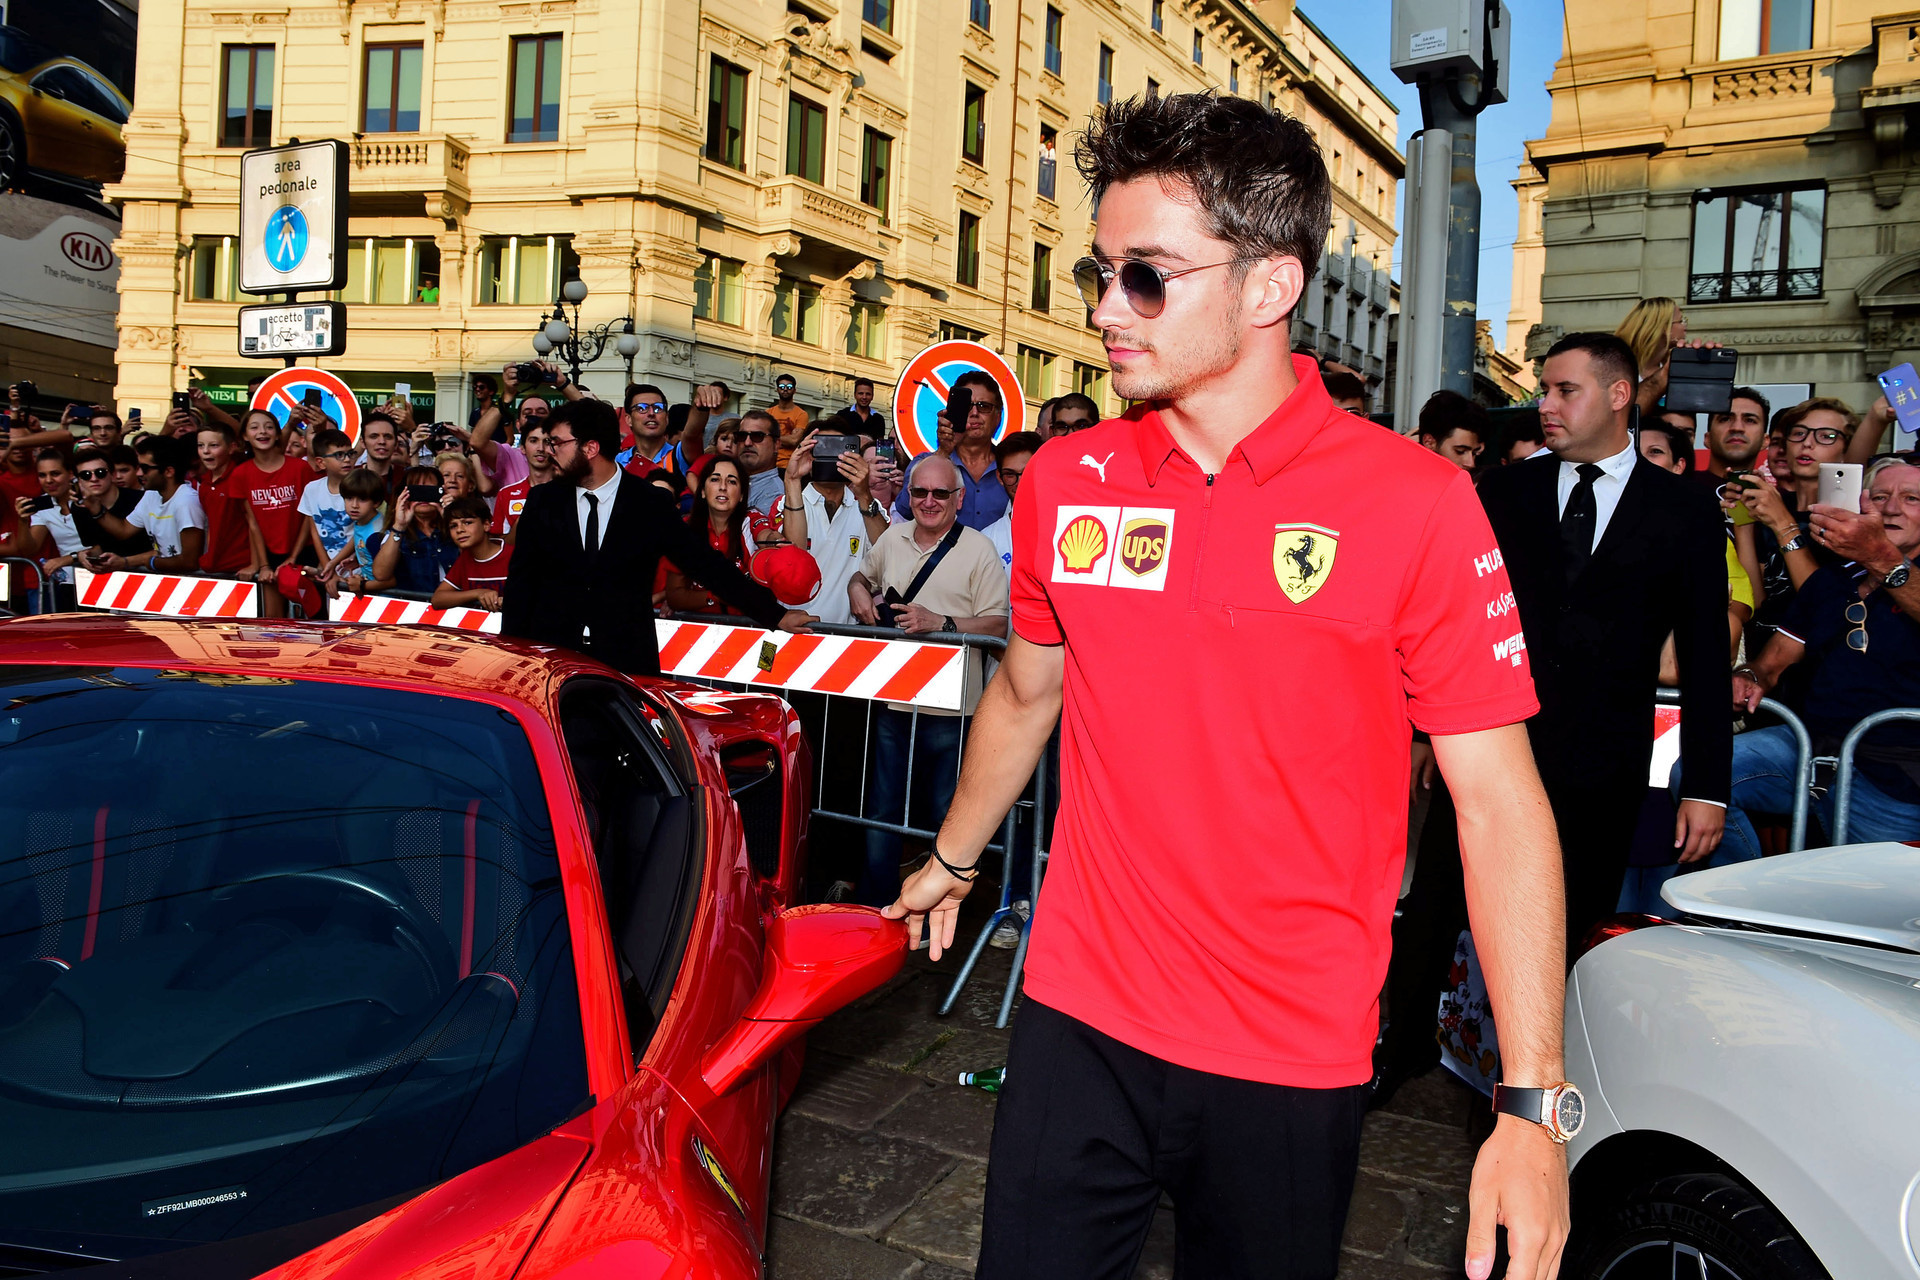 2019 Ferrari 90 Years celebration at Milan | 4 Sept 2019 website 13.jpg